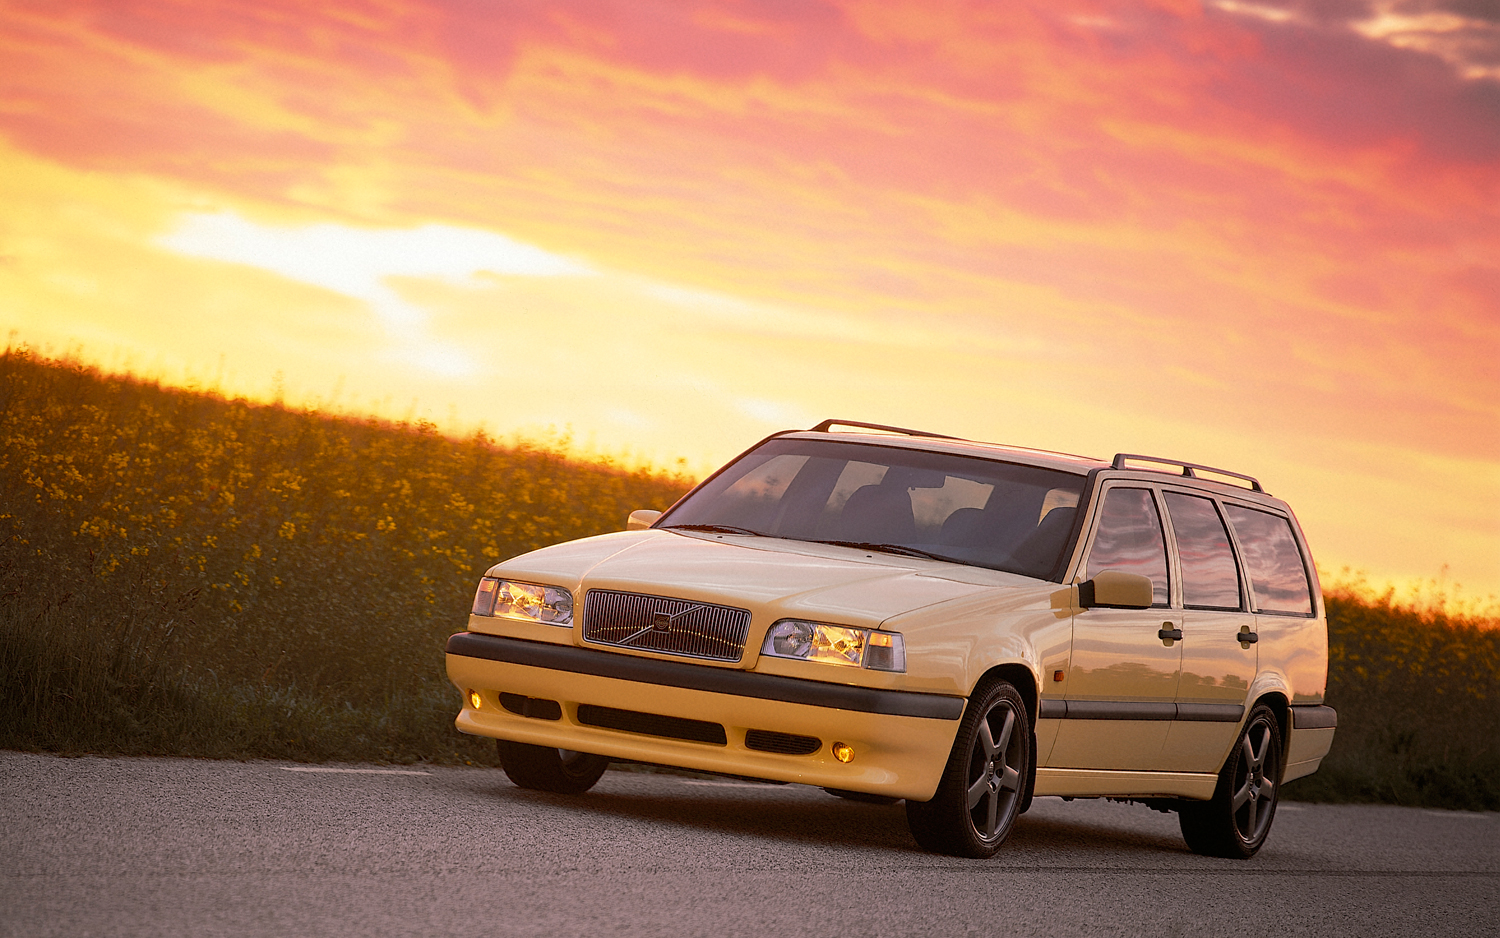 volvo-850-wagon-ultimate-sweeper-by-jane-b-for-wheelsbywovka-4